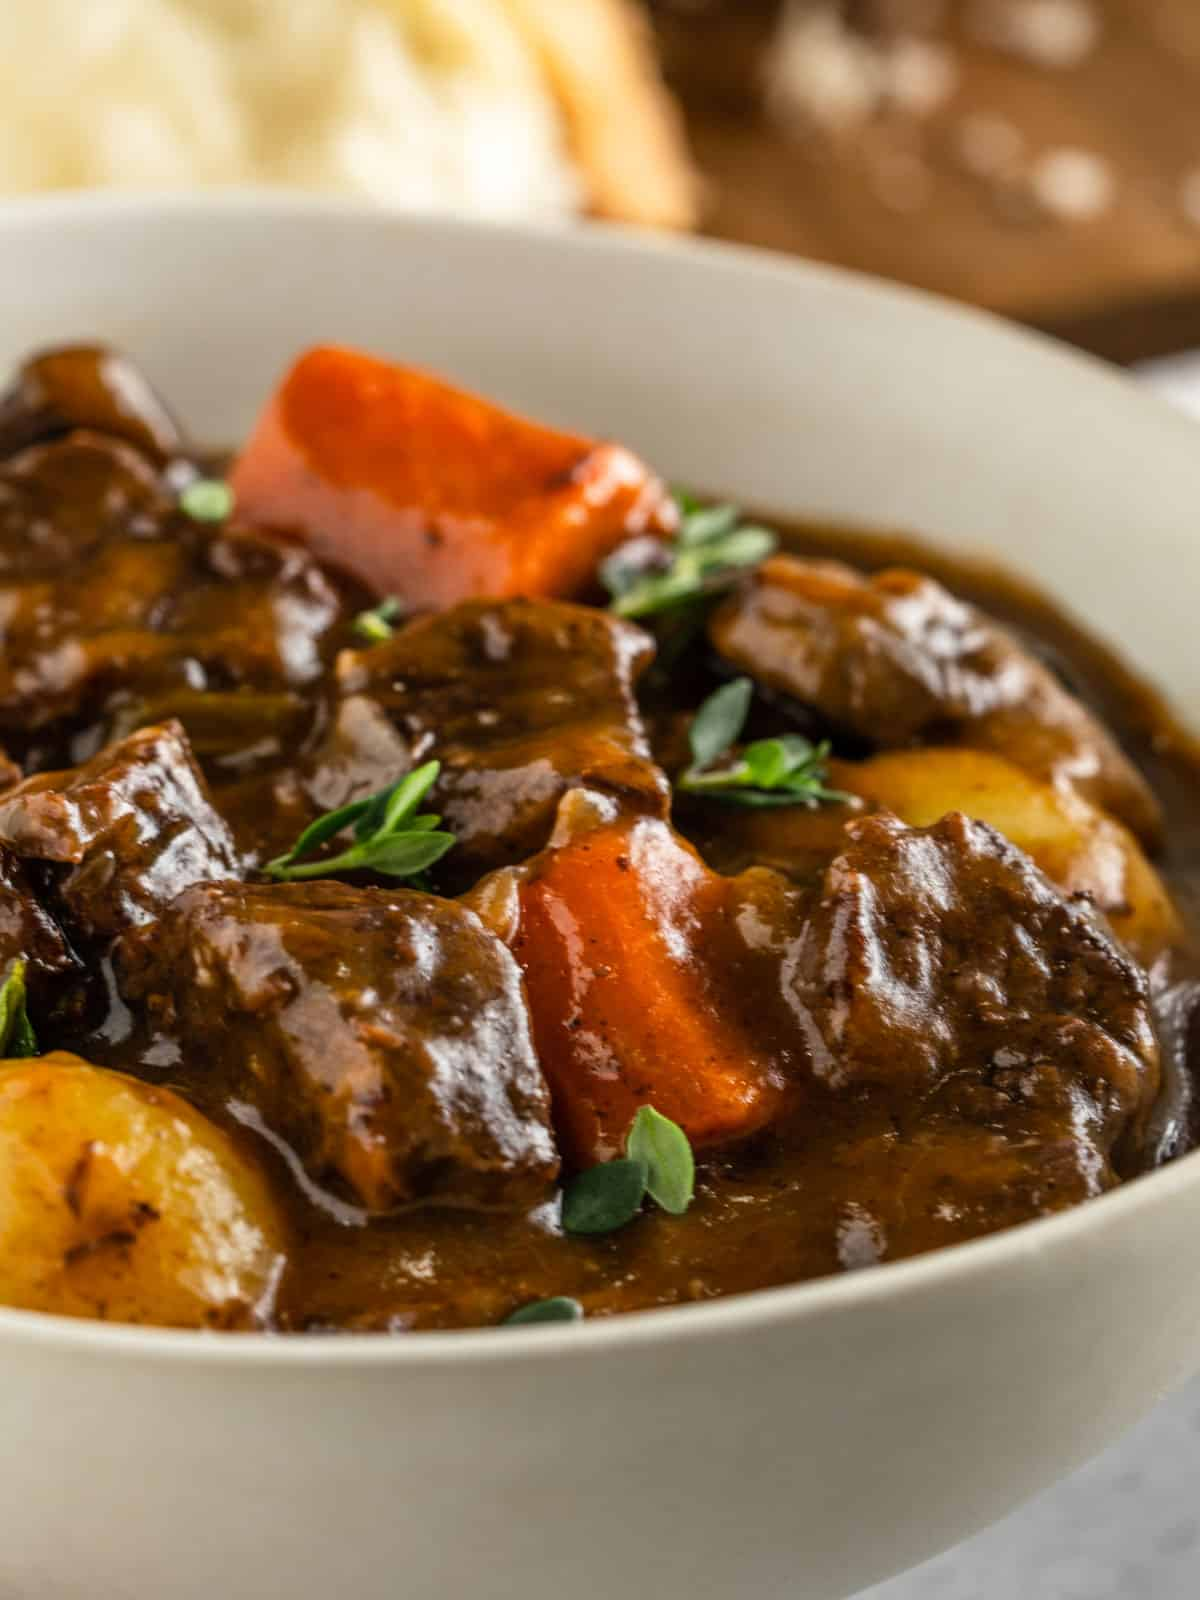 A white bowl of beef stew with beef, carrots, potatoes and garnished with fresh thyme leaves